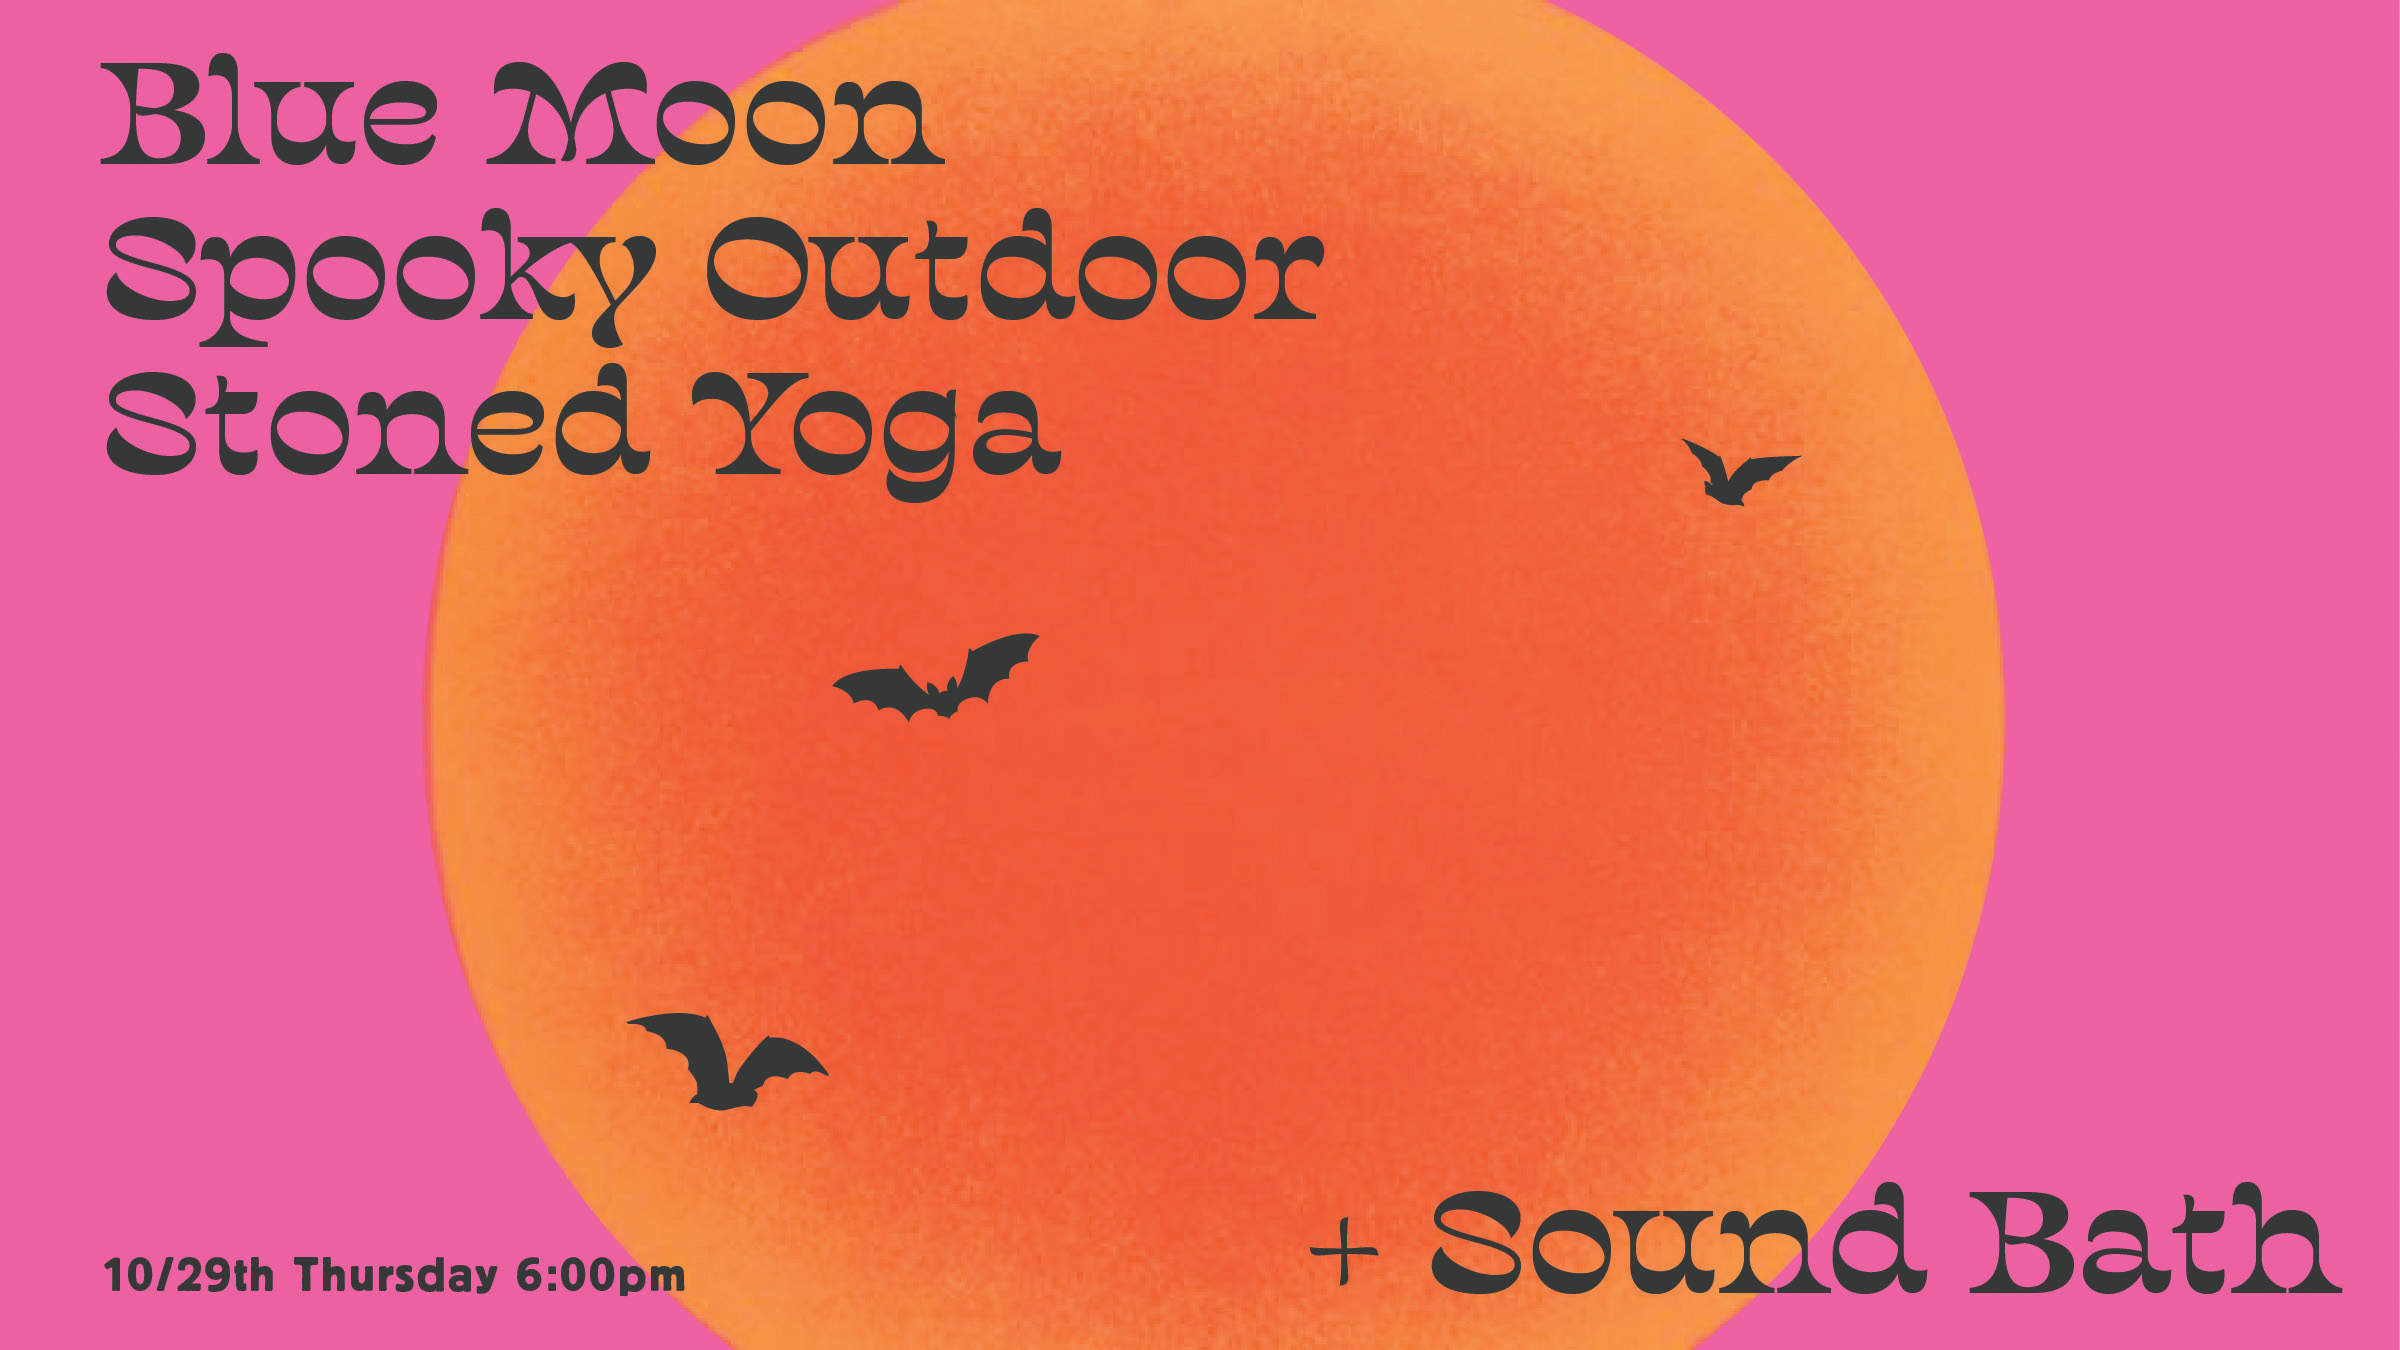 Blue Moon Spooky Outdoor Stoned Yoga + Sound Bath